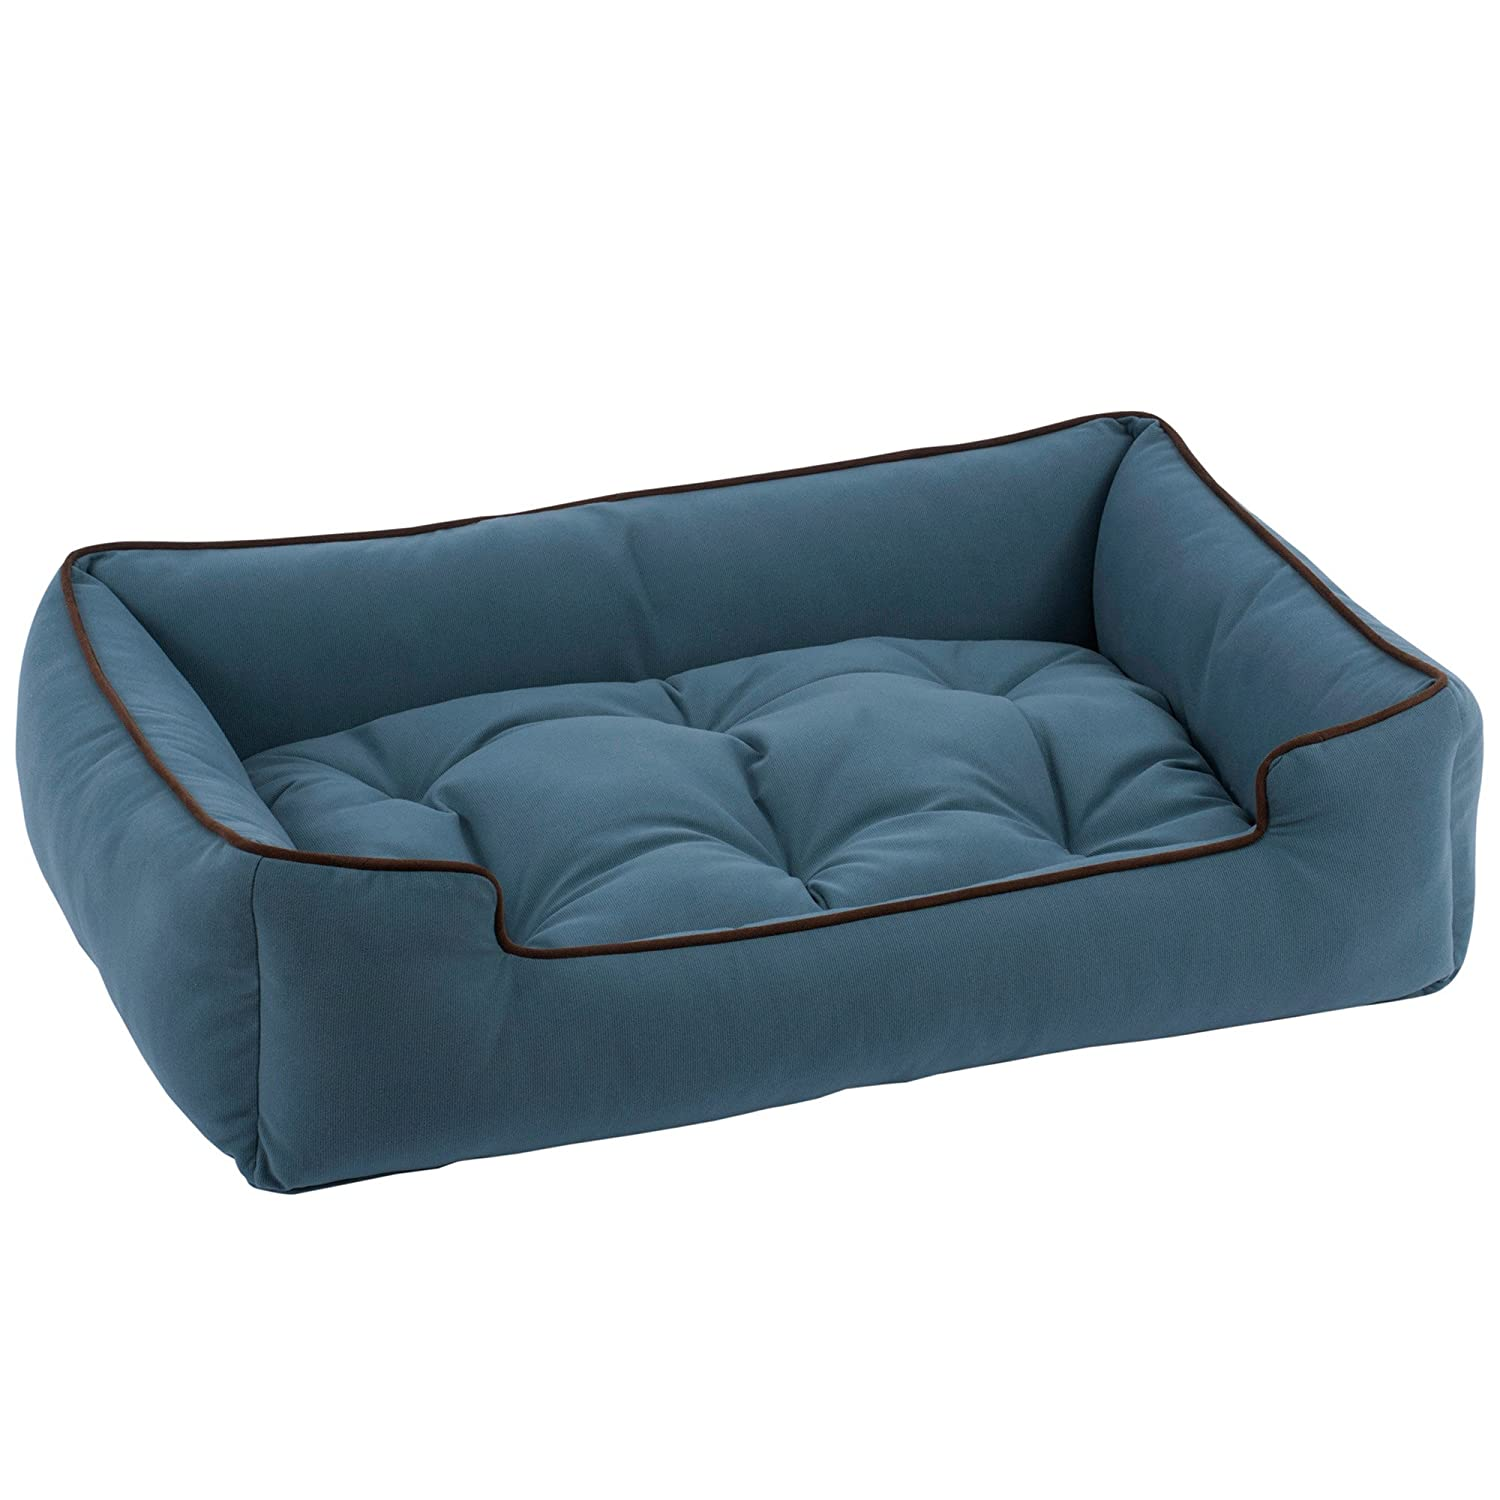 Jax Bones Sleeper Dog Bed